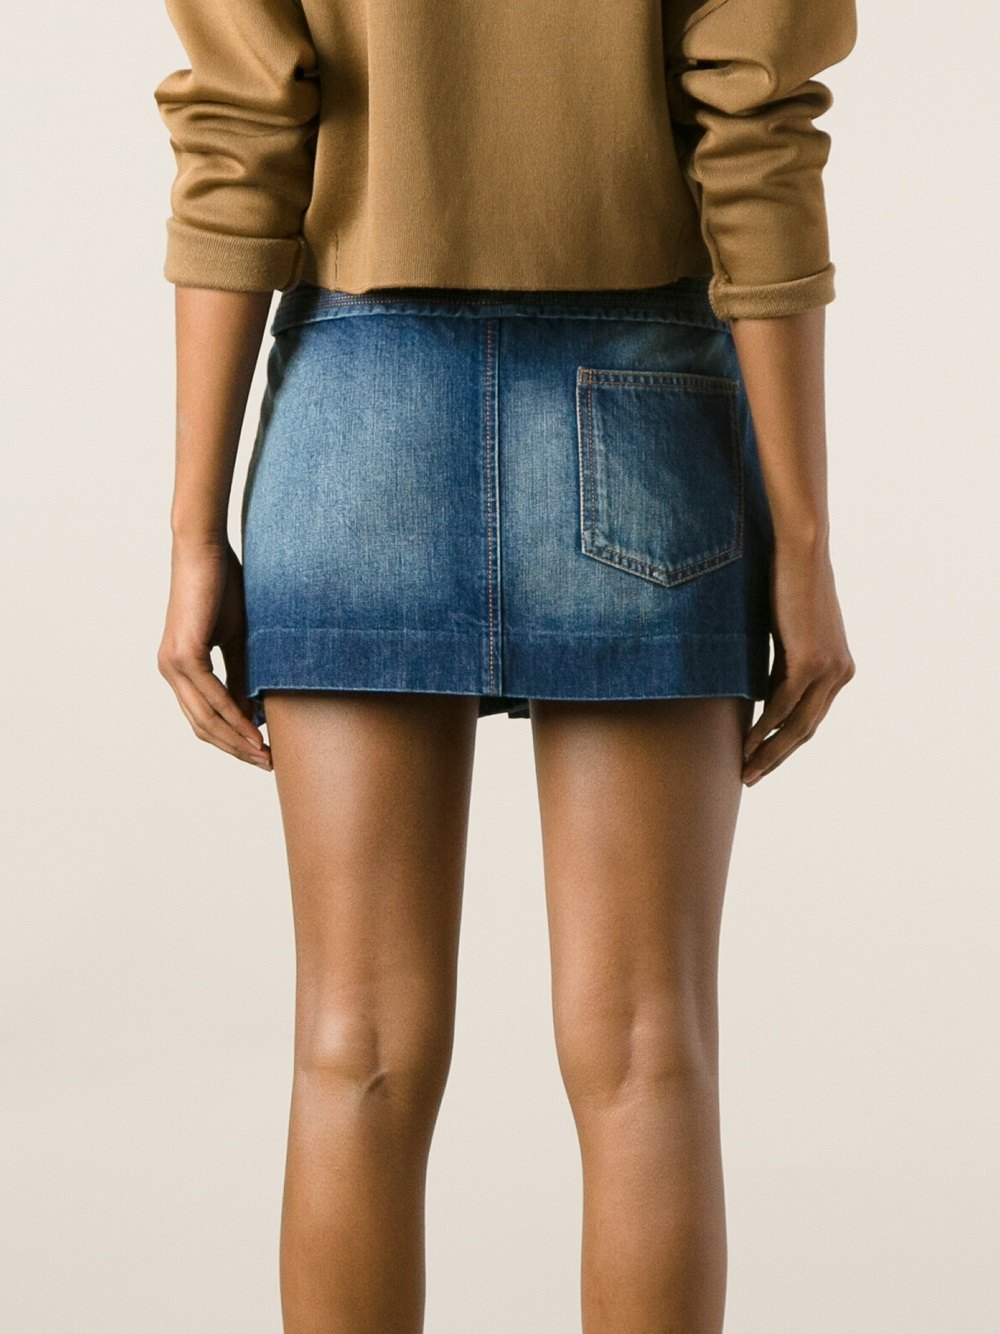 Blue Jean Mini Skirts - Dress Ala